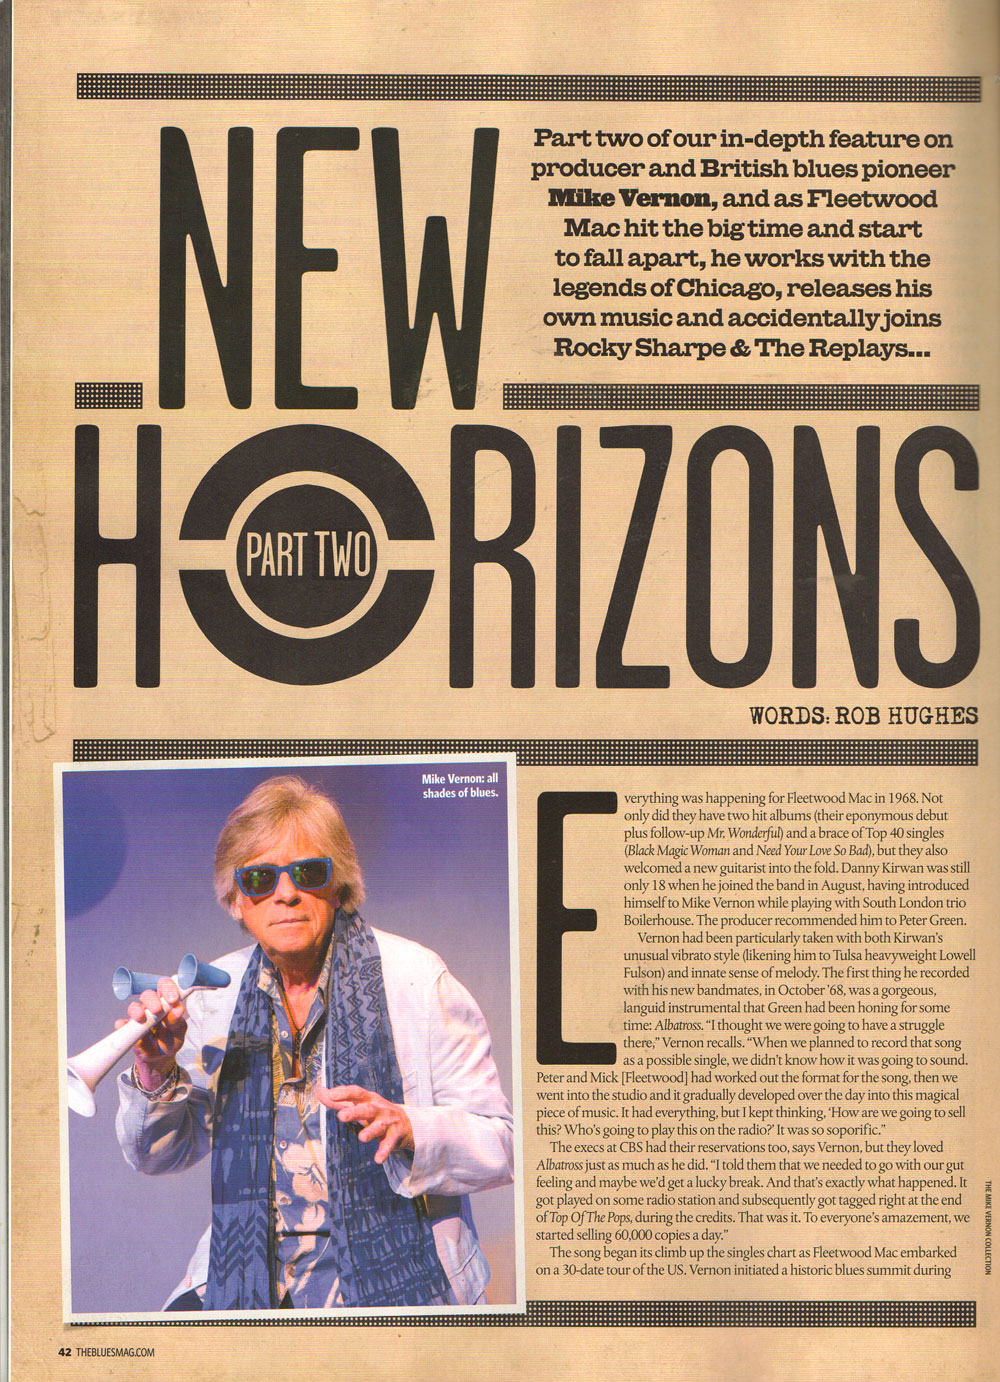 Mike-Vernon-Blues-Mag-feat-p-1-p-2-Jan-16a.jpg